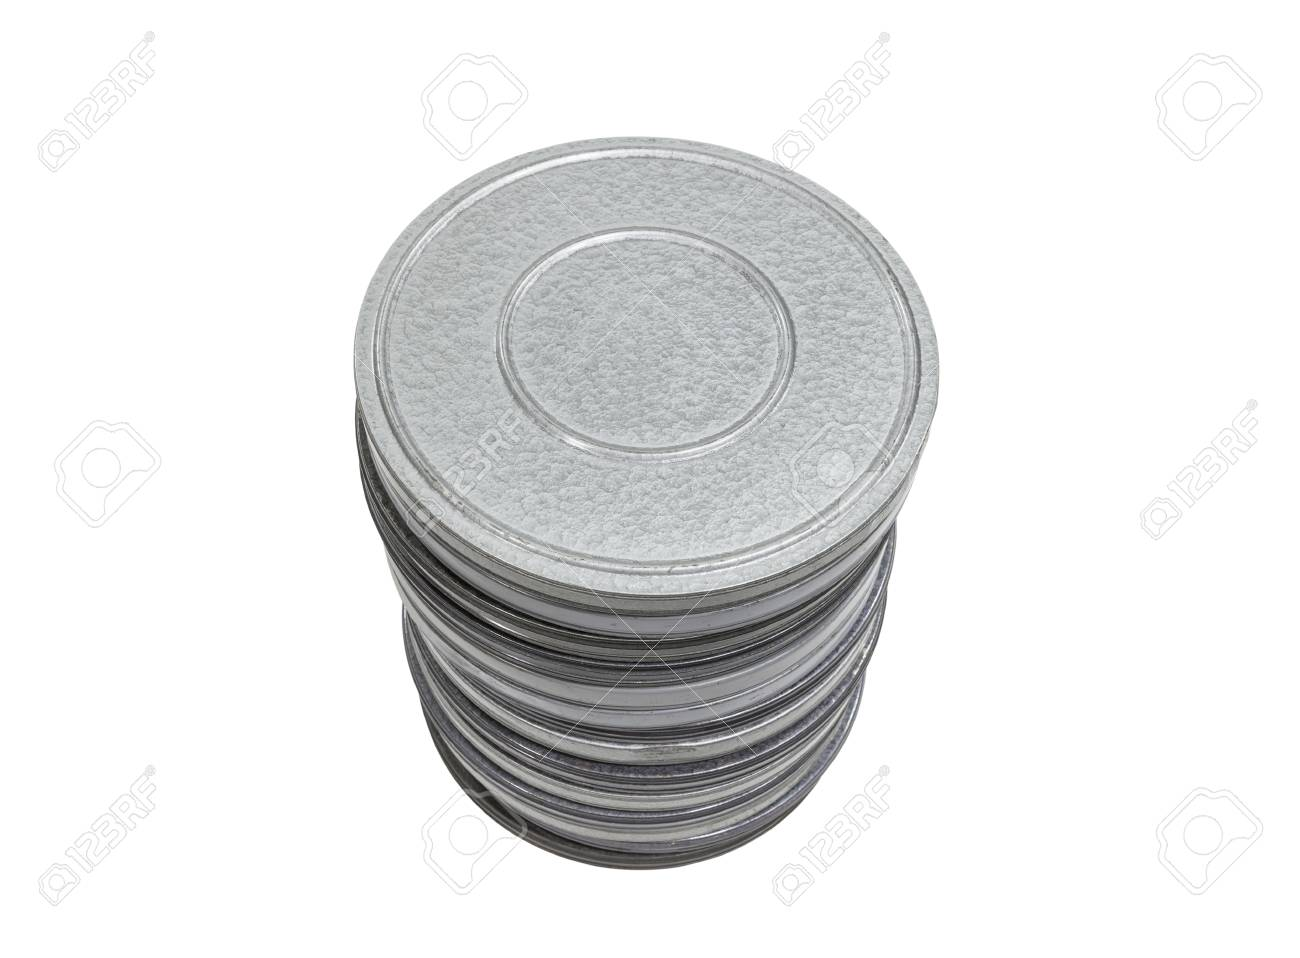 Vintage movie film cans isolated Stock Photo - 22023309